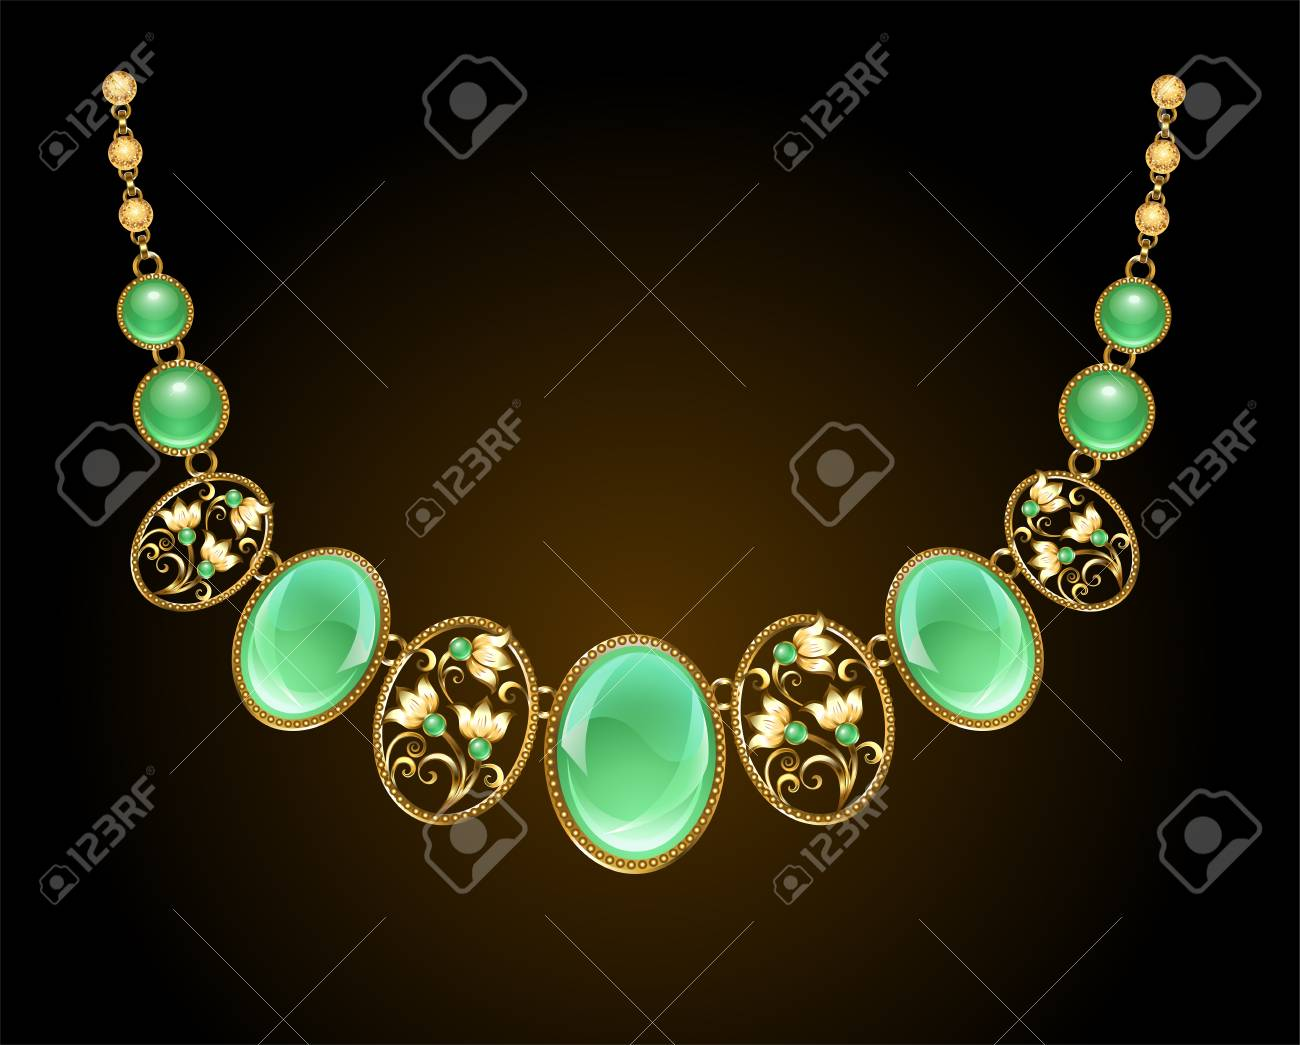 A Gold Necklace With An Oval Precious Chrysoprase Stone And A